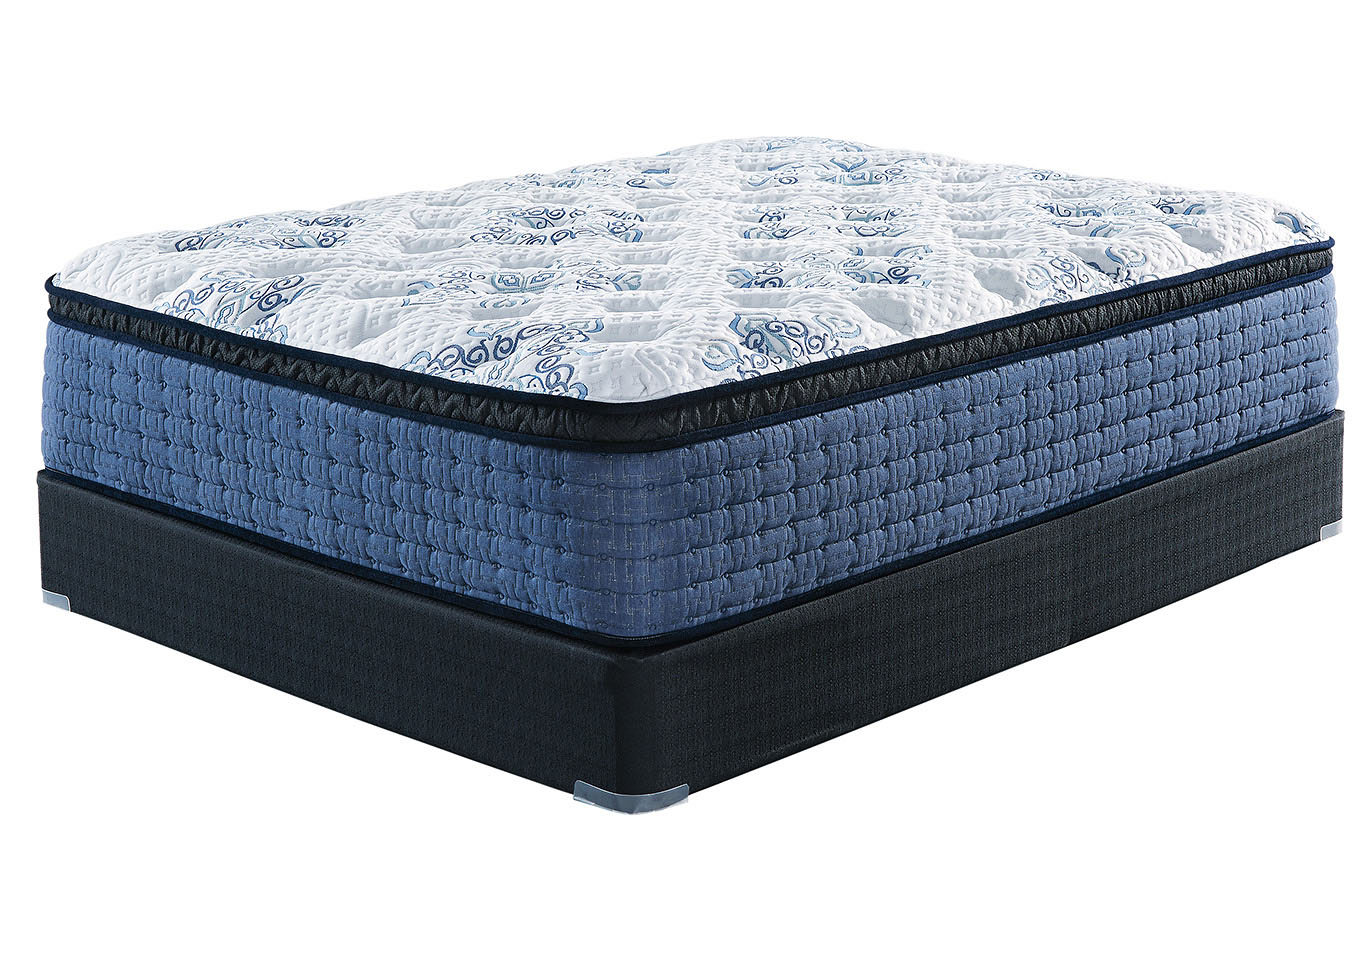 Mt. Dana Euro Top Full Mattress w/Foundation,Sierra Sleep by Ashley